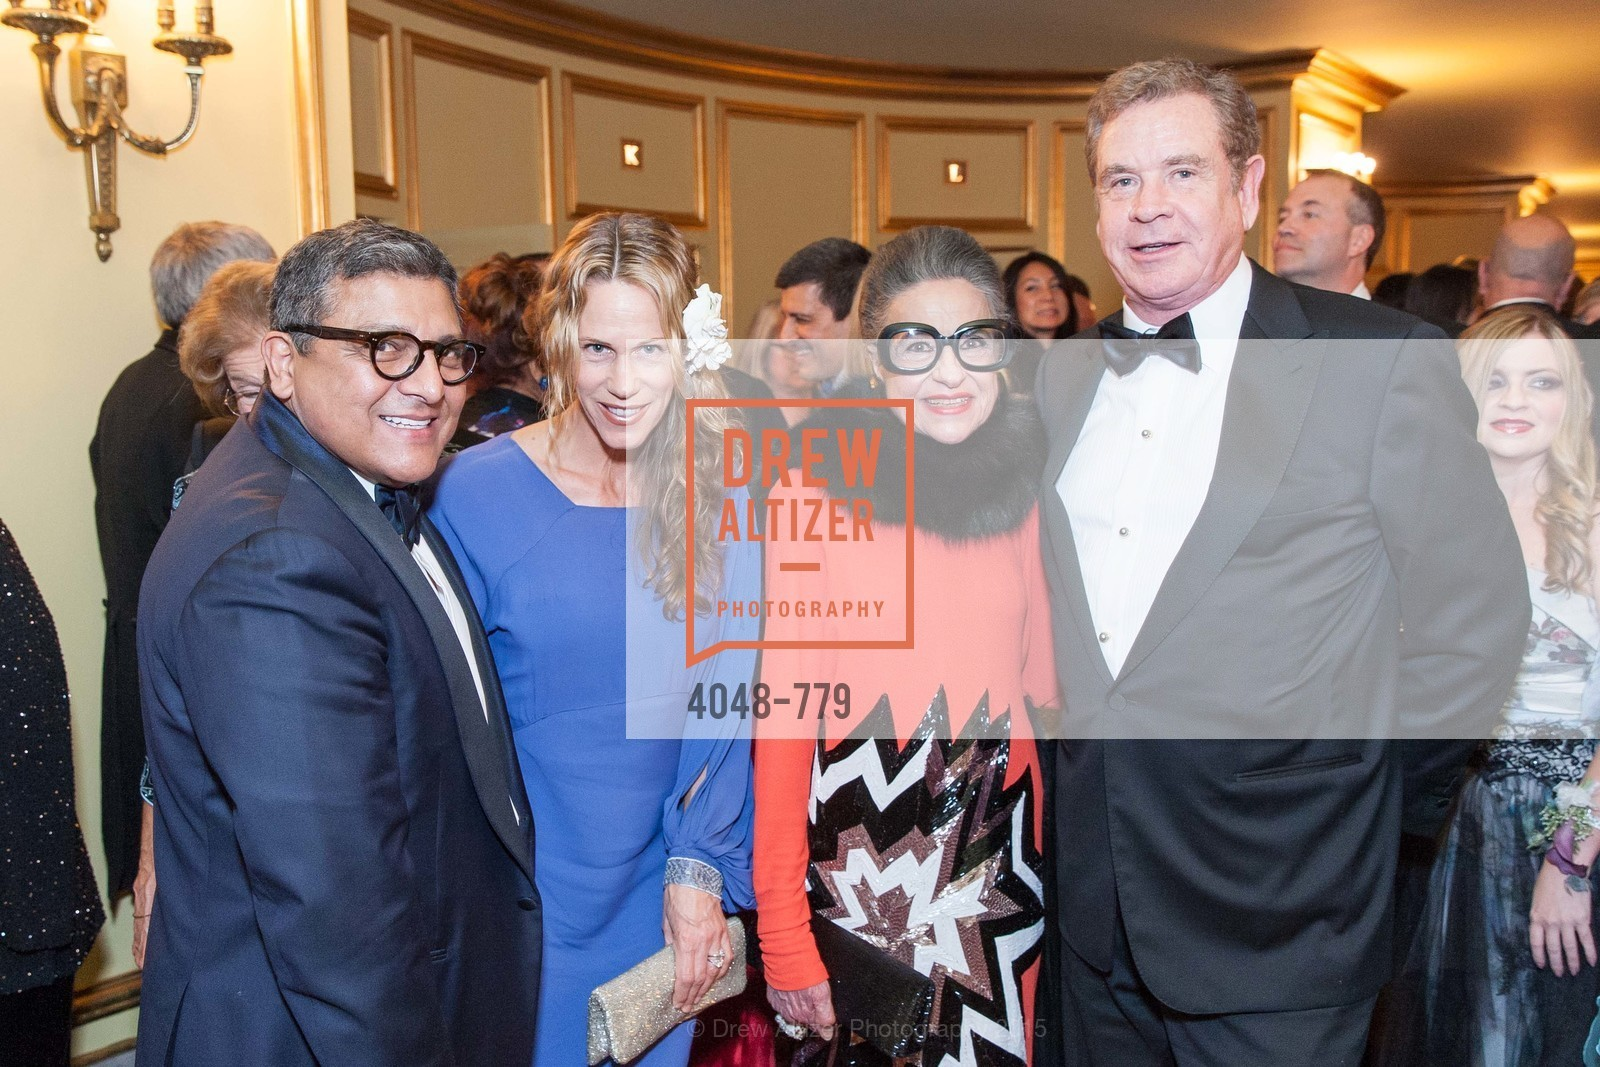 Riccardo Benavides, Melissa Barber, Joy Venturini Bianchi, Louis Silcox, San Francisco Ballet 2015 Opening Night Gala, San Francisco City Hall. 1 Dr Carlton B Goodlett Pl, January 22nd, 2015,Drew Altizer, Drew Altizer Photography, full-service event agency, private events, San Francisco photographer, photographer California